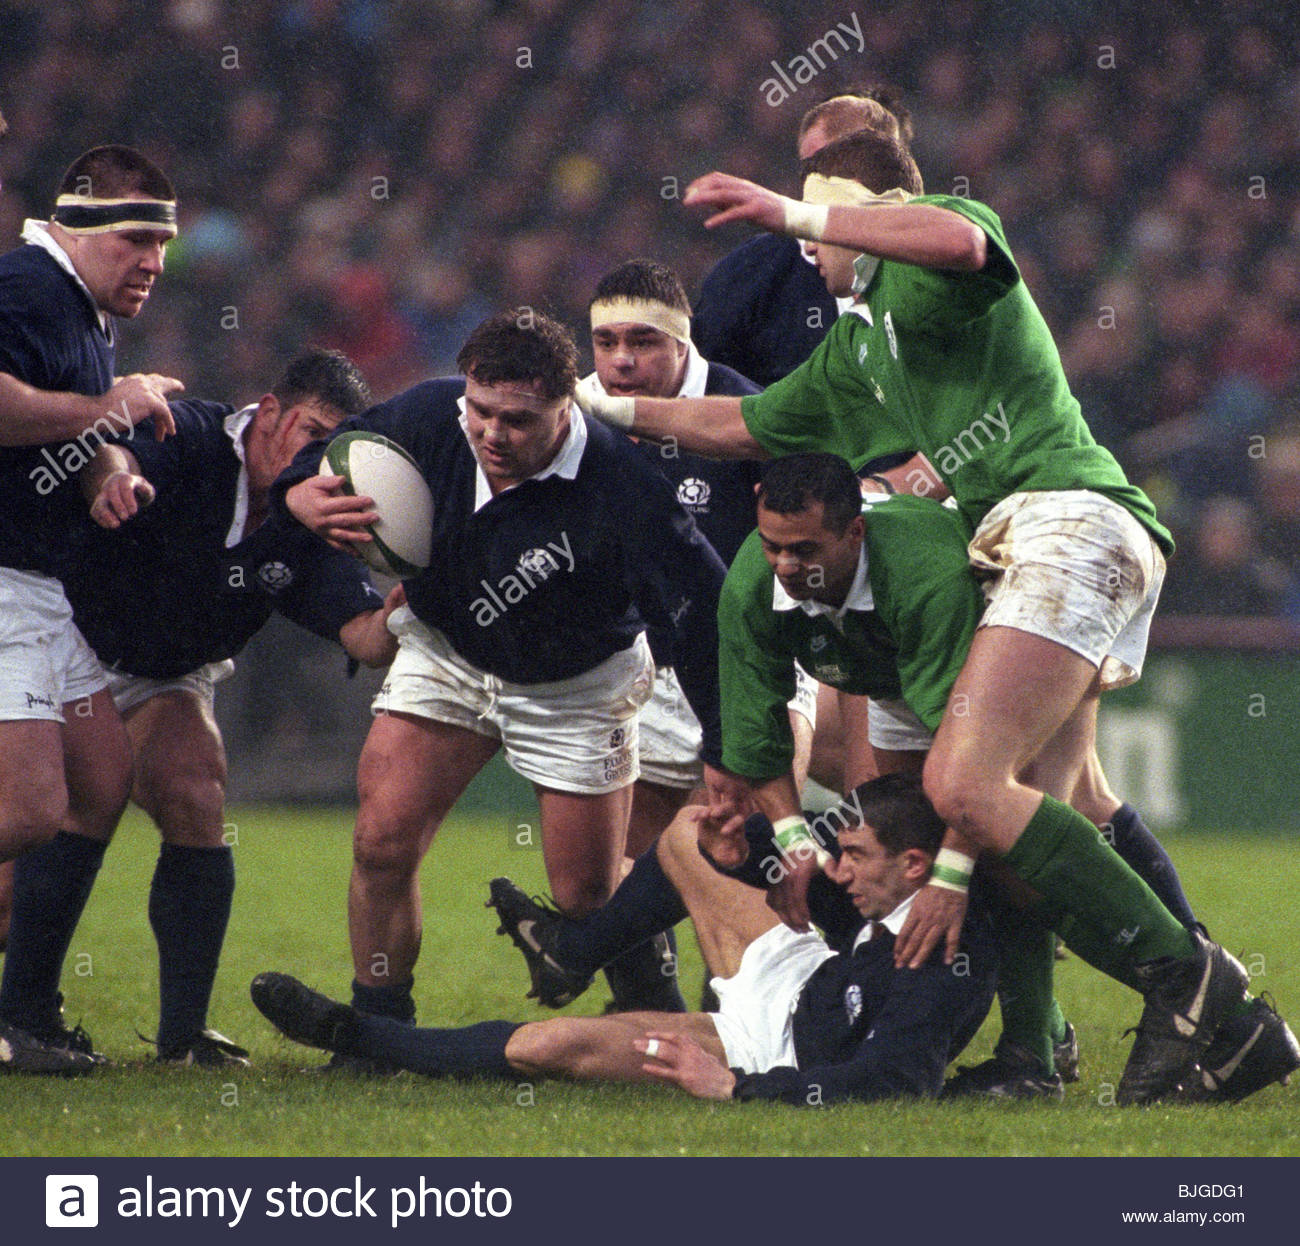 20/01/96 FIVE NATIONS IRELAND V SCOTLAND (10-16) LANSDOWNE ROAD - DUBLIN Scotland's David Hilton takes possession - Stock Image